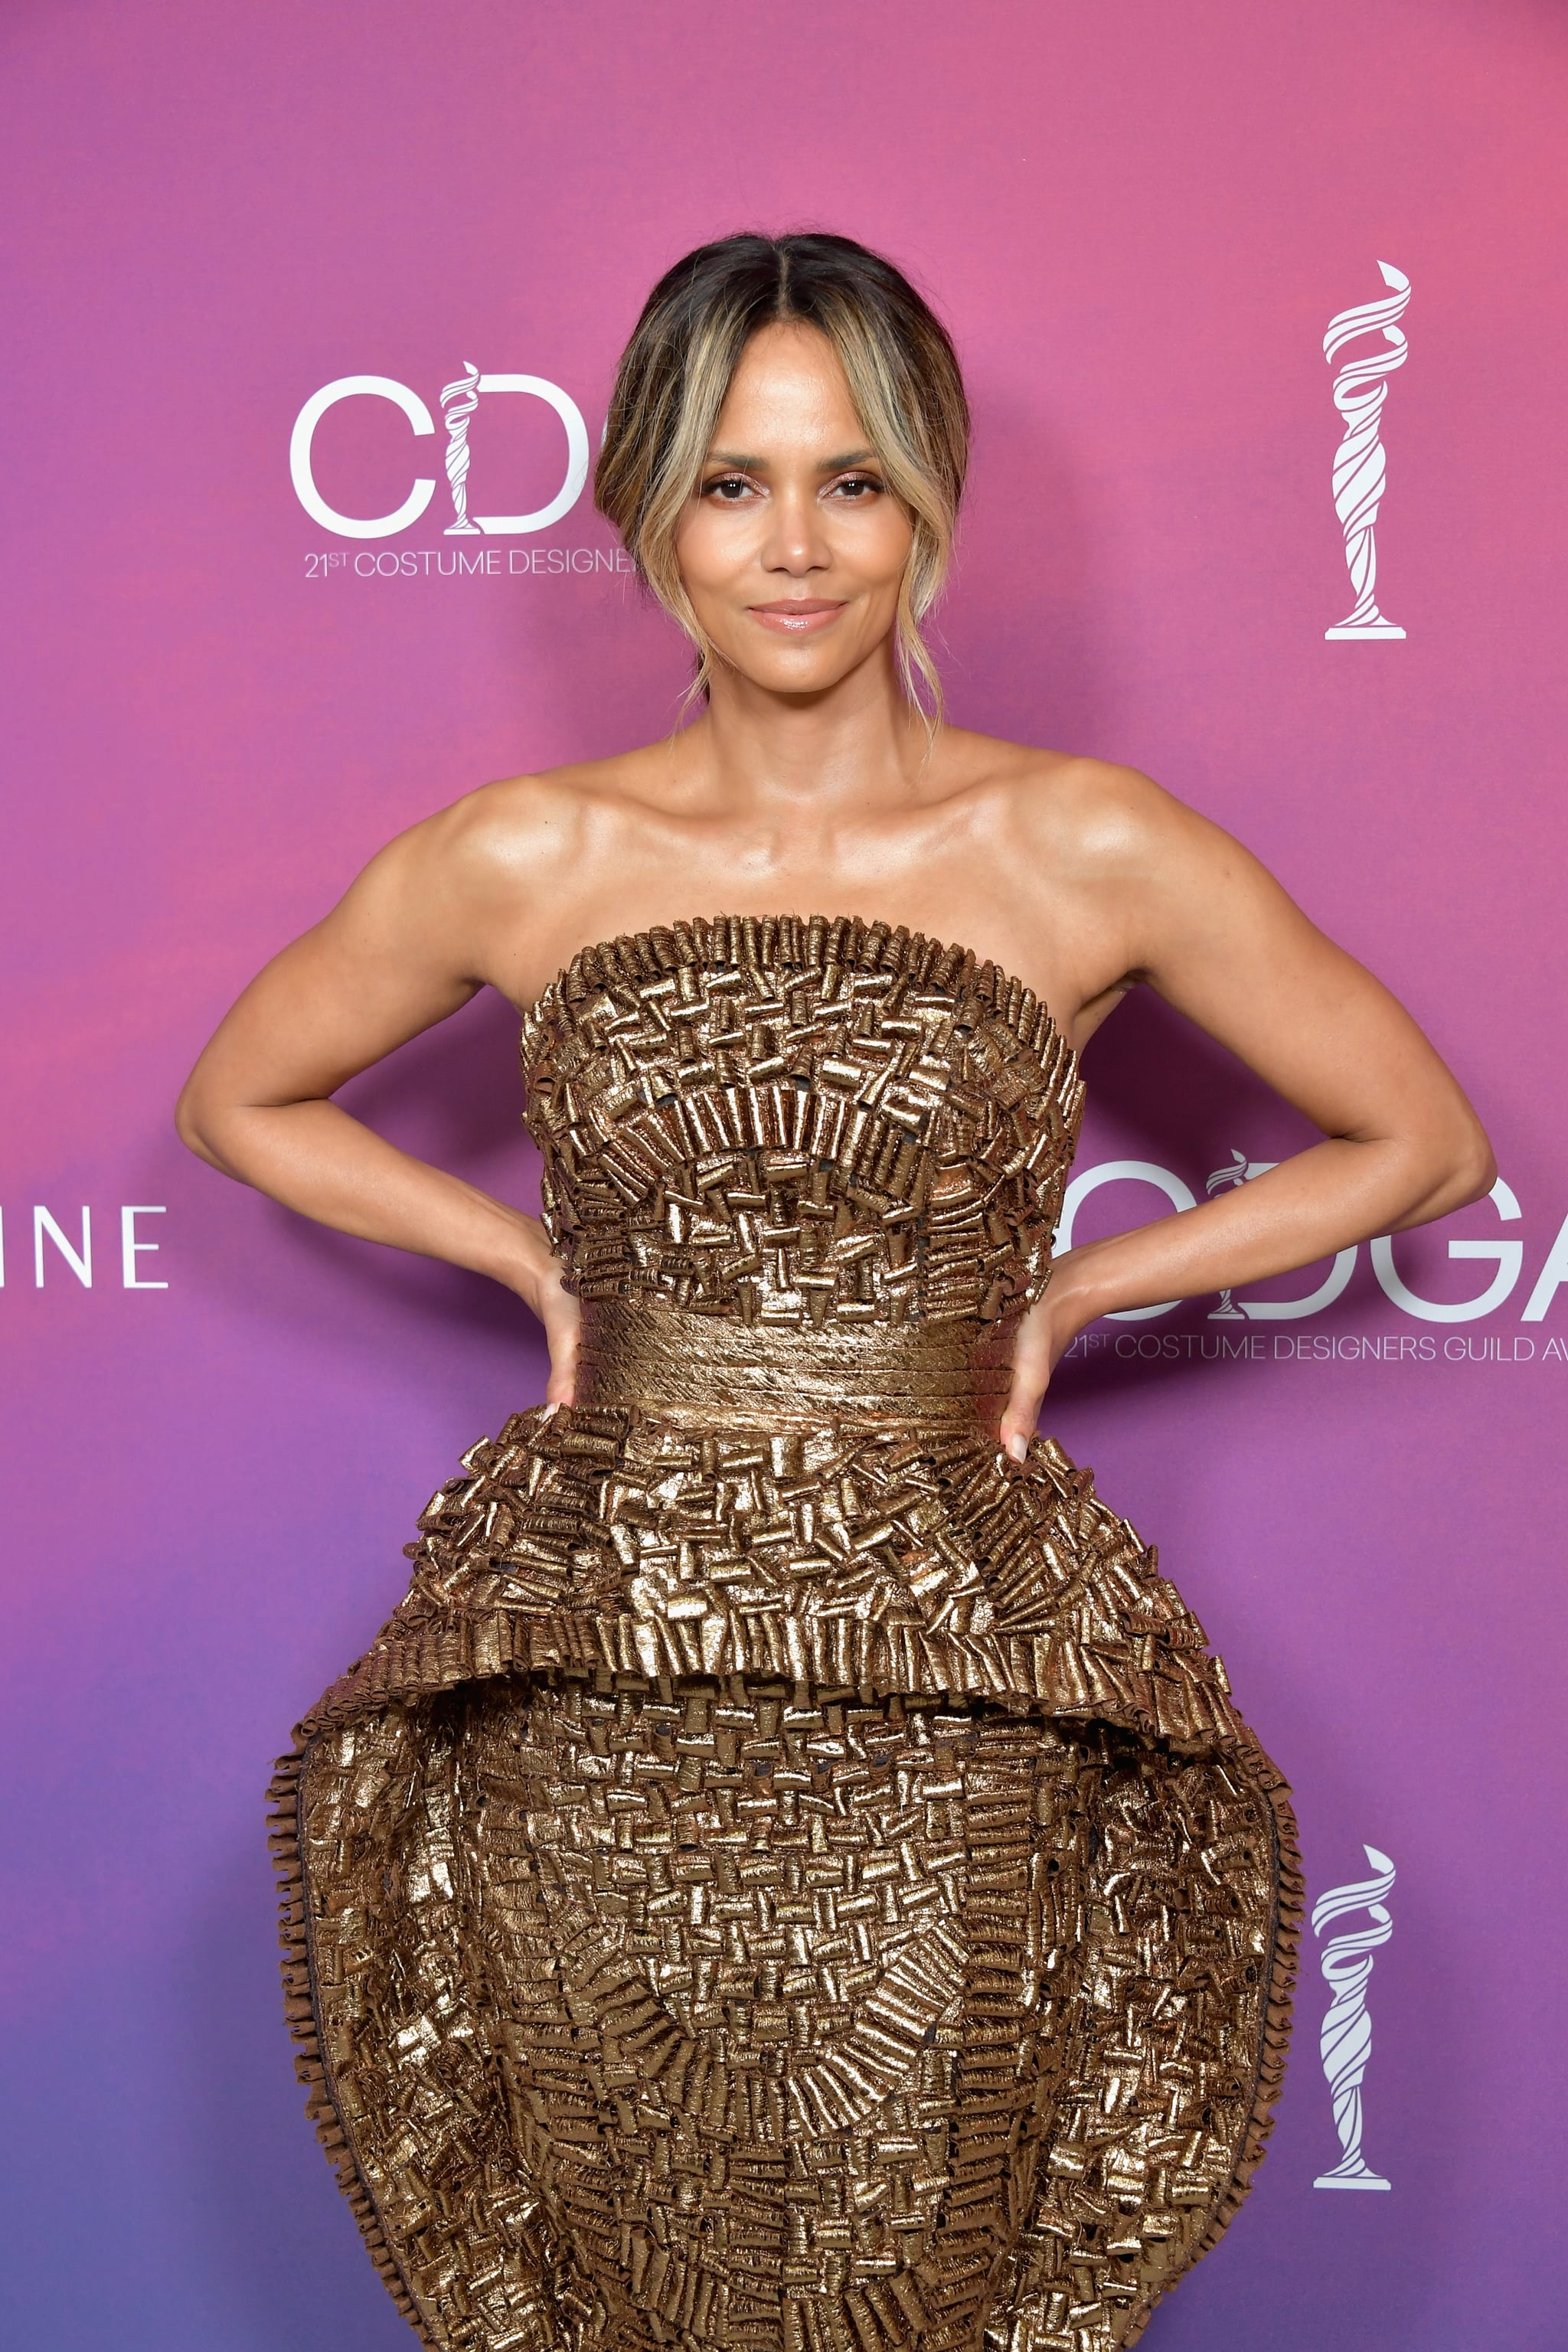 BEVERLY HILLS, CA - FEBRUARY 19:  Halle Berry attends The 21st CDGA (Costume Designers Guild Awards) at The Beverly Hilton Hotel on February 19, 2019 in Beverly Hills, California.  (Photo by Amy Sussman/Getty Images for CDGA)